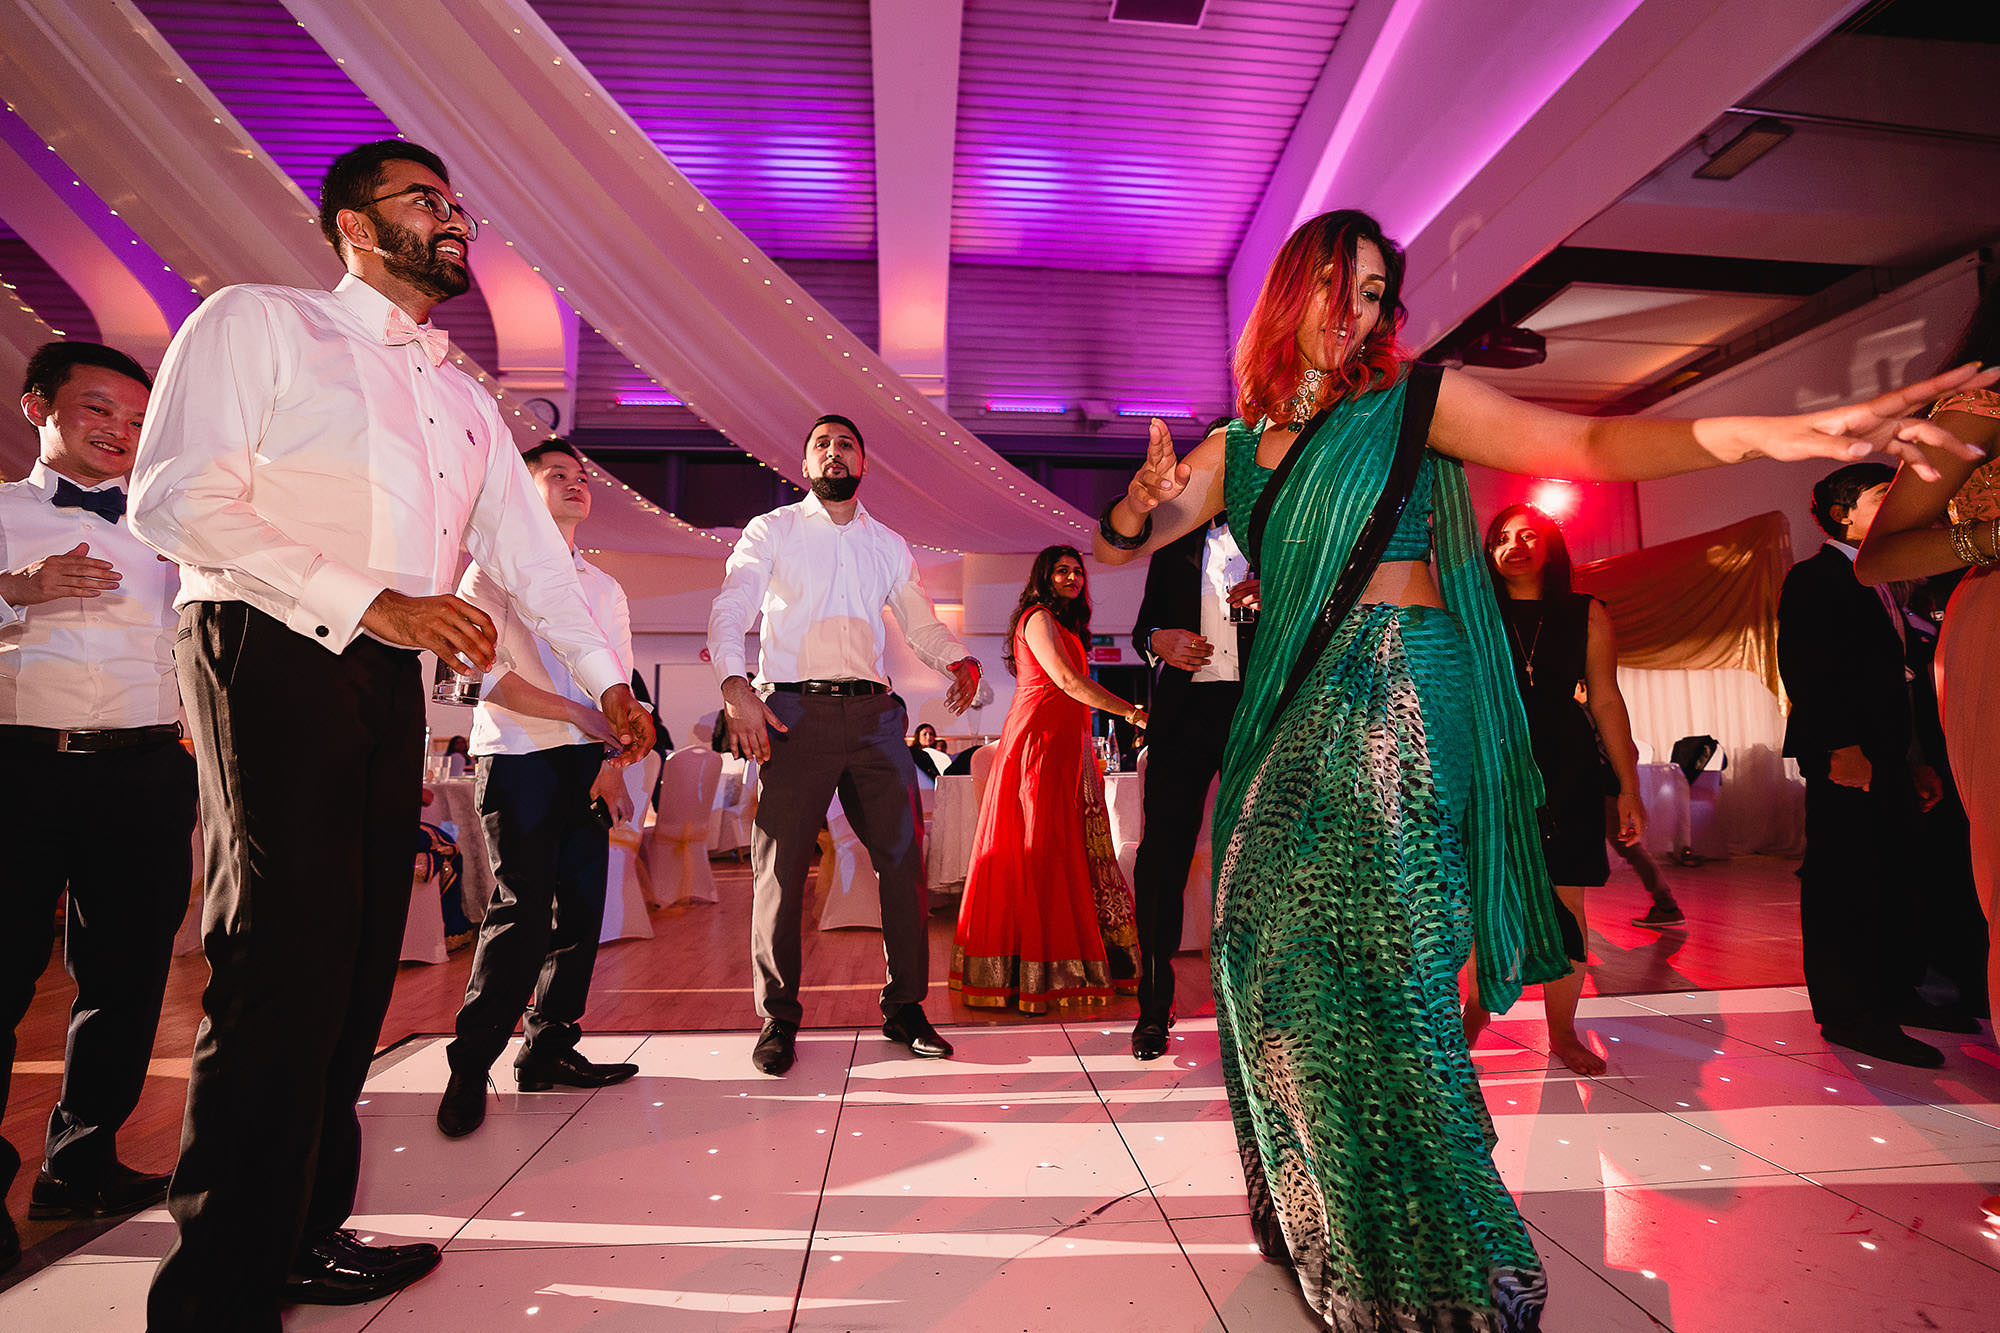 dance off at wedding reception